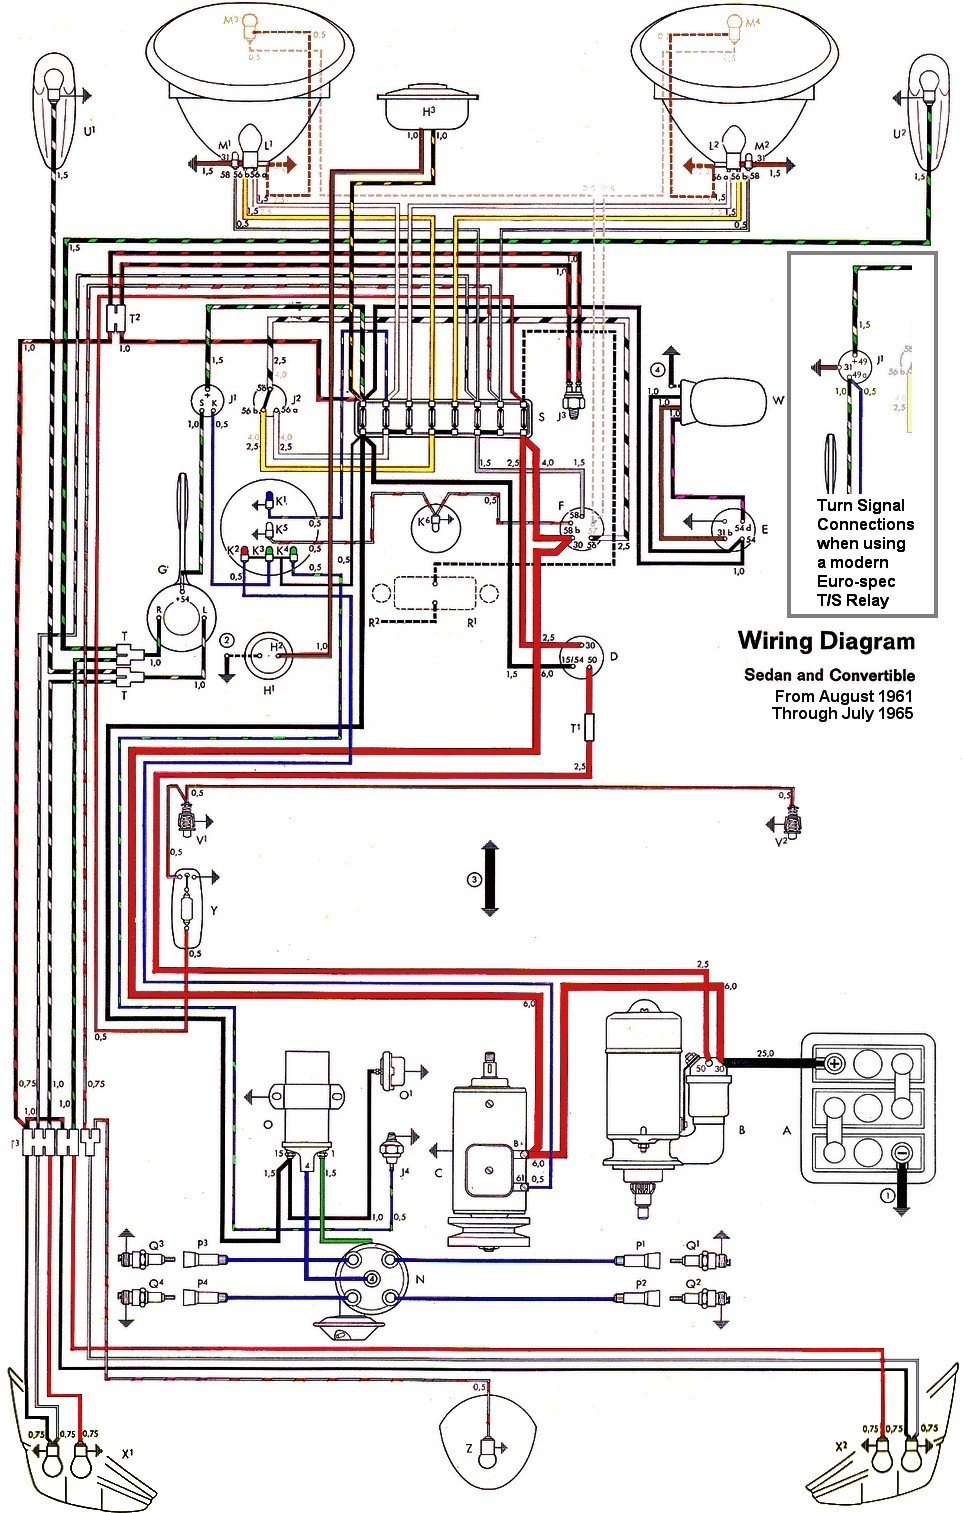 bug_62 65withinset thesamba com type 1 wiring diagrams 1971 vw super beetle wiring diagram at bayanpartner.co